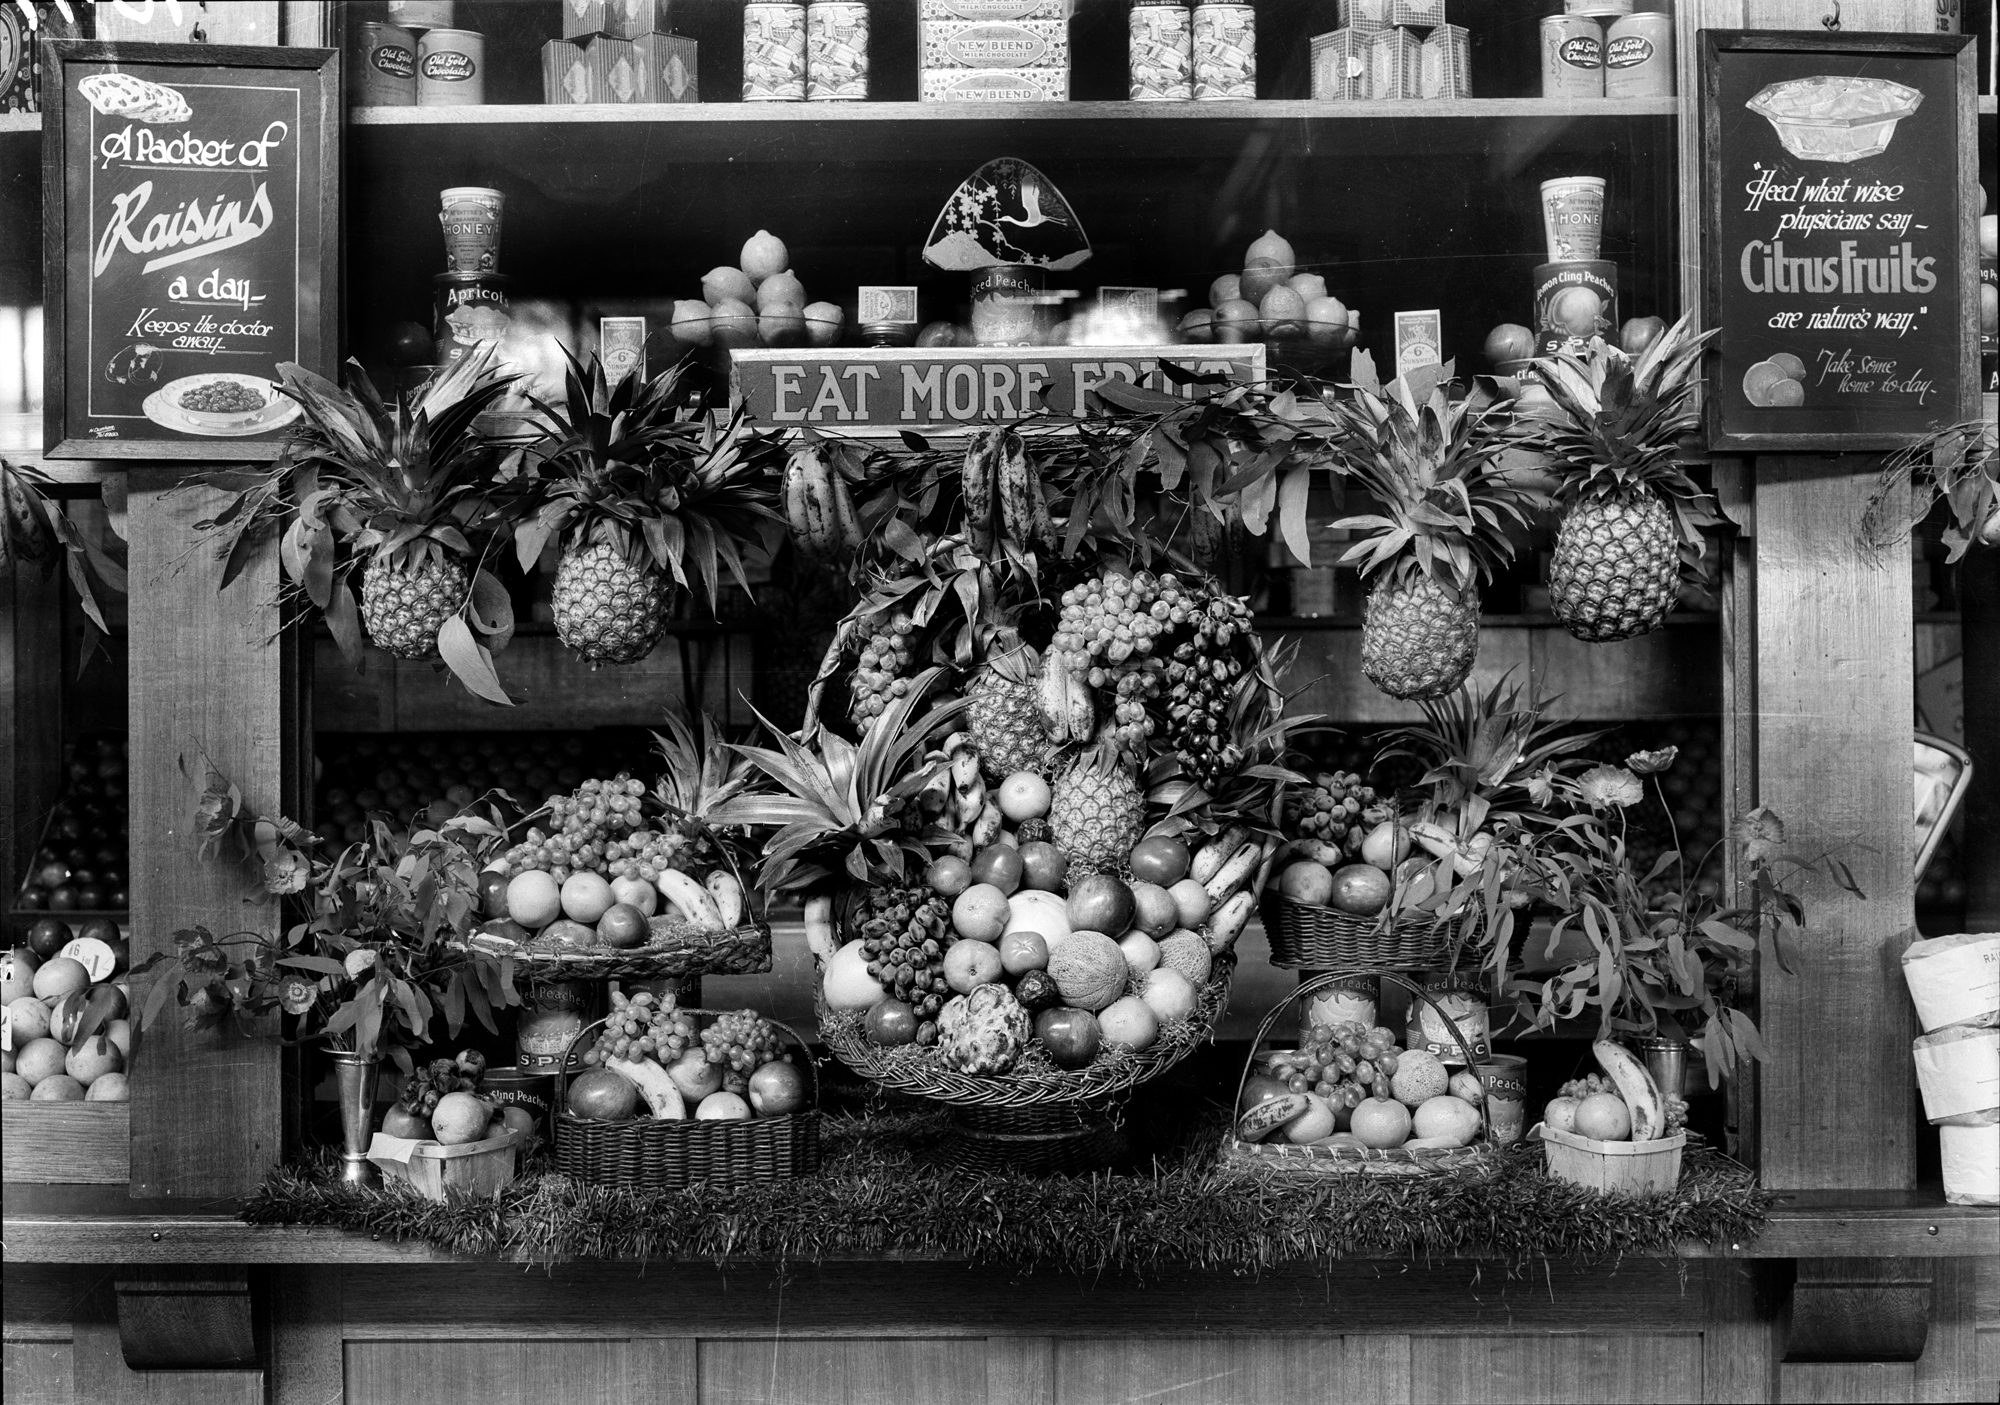 Dried Fruit Stall at Flinders Street Station circa 1920s